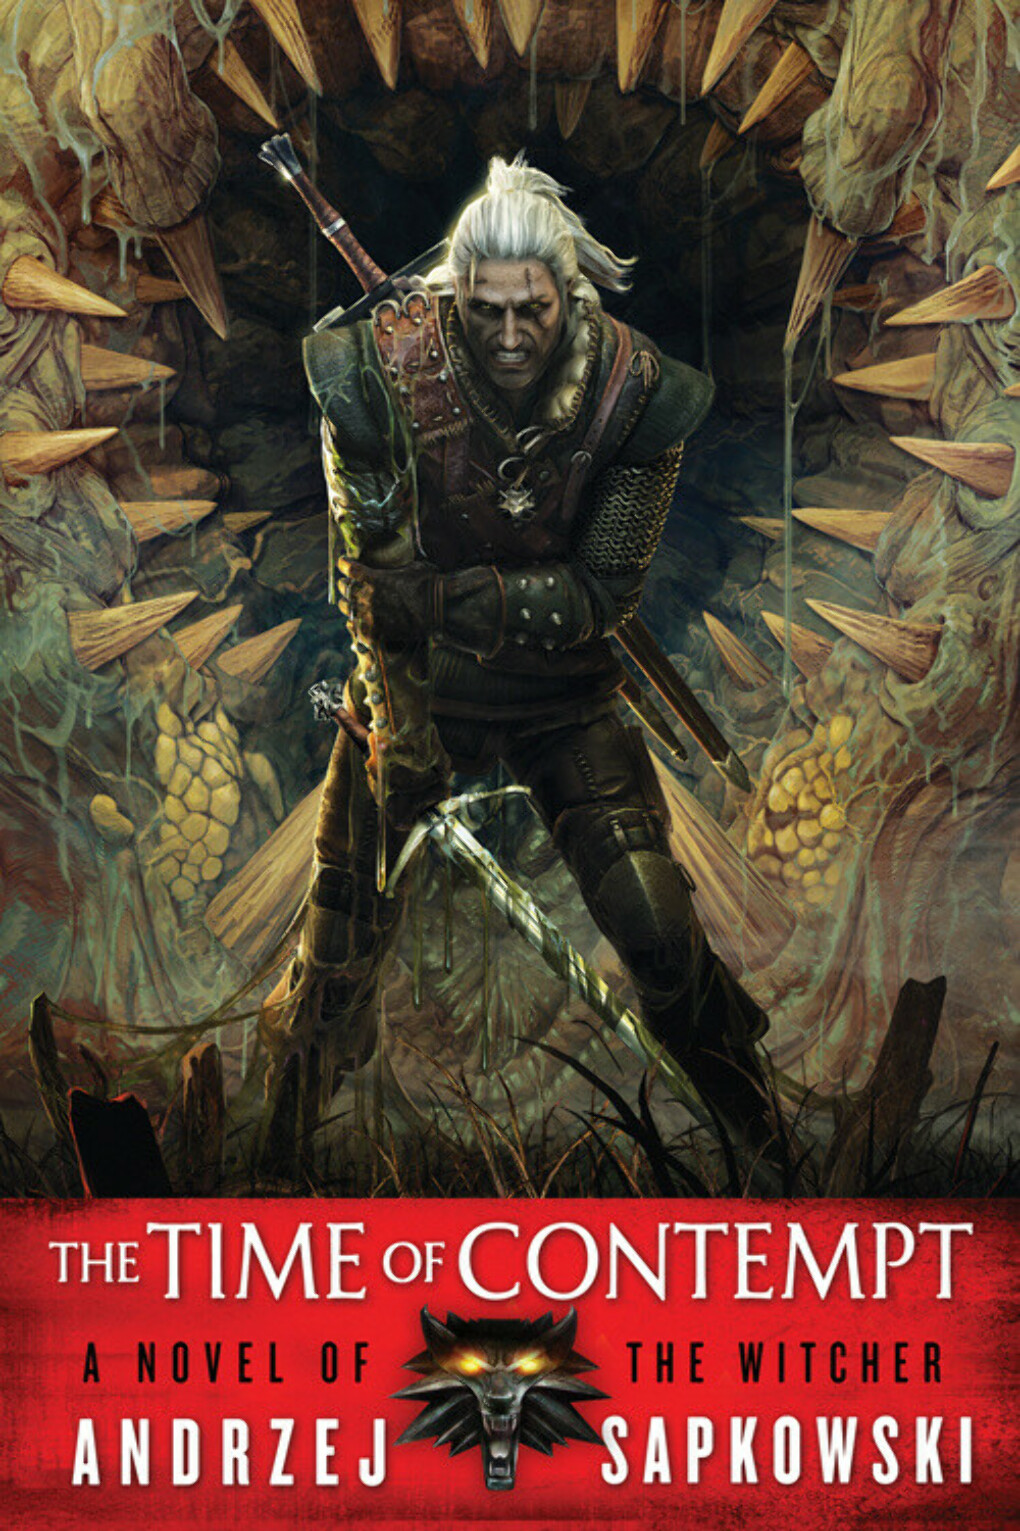 The Witcher The Time of Contempt